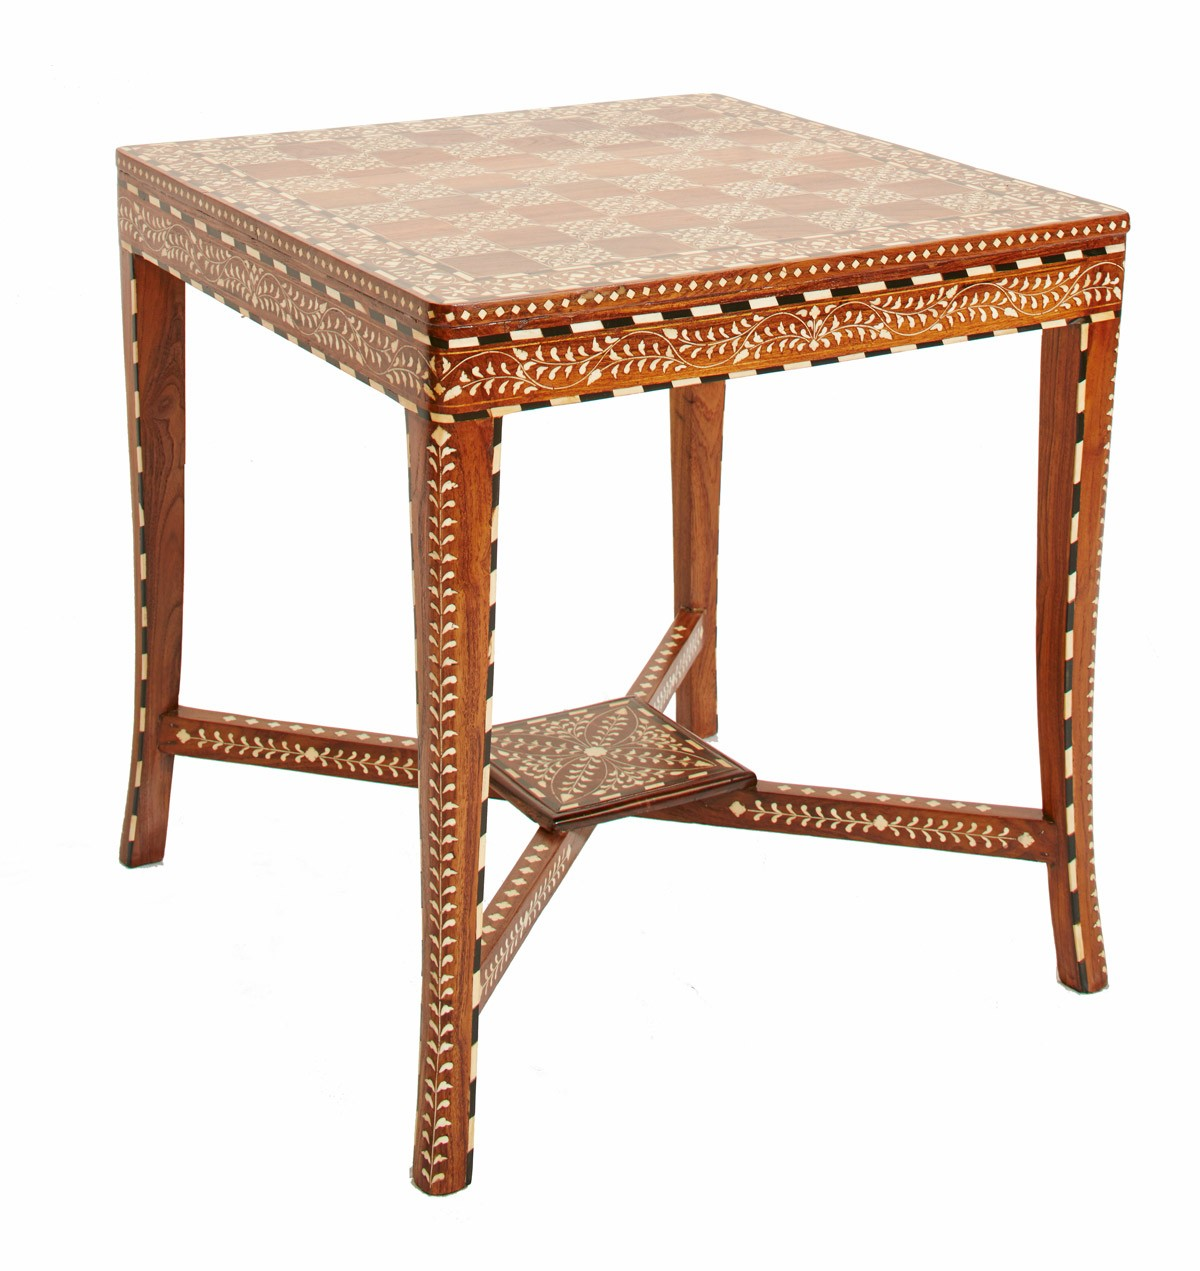 Admirable Chess Bone Inlay Side Table Handmade Indian Furniture Dailytribune Chair Design For Home Dailytribuneorg